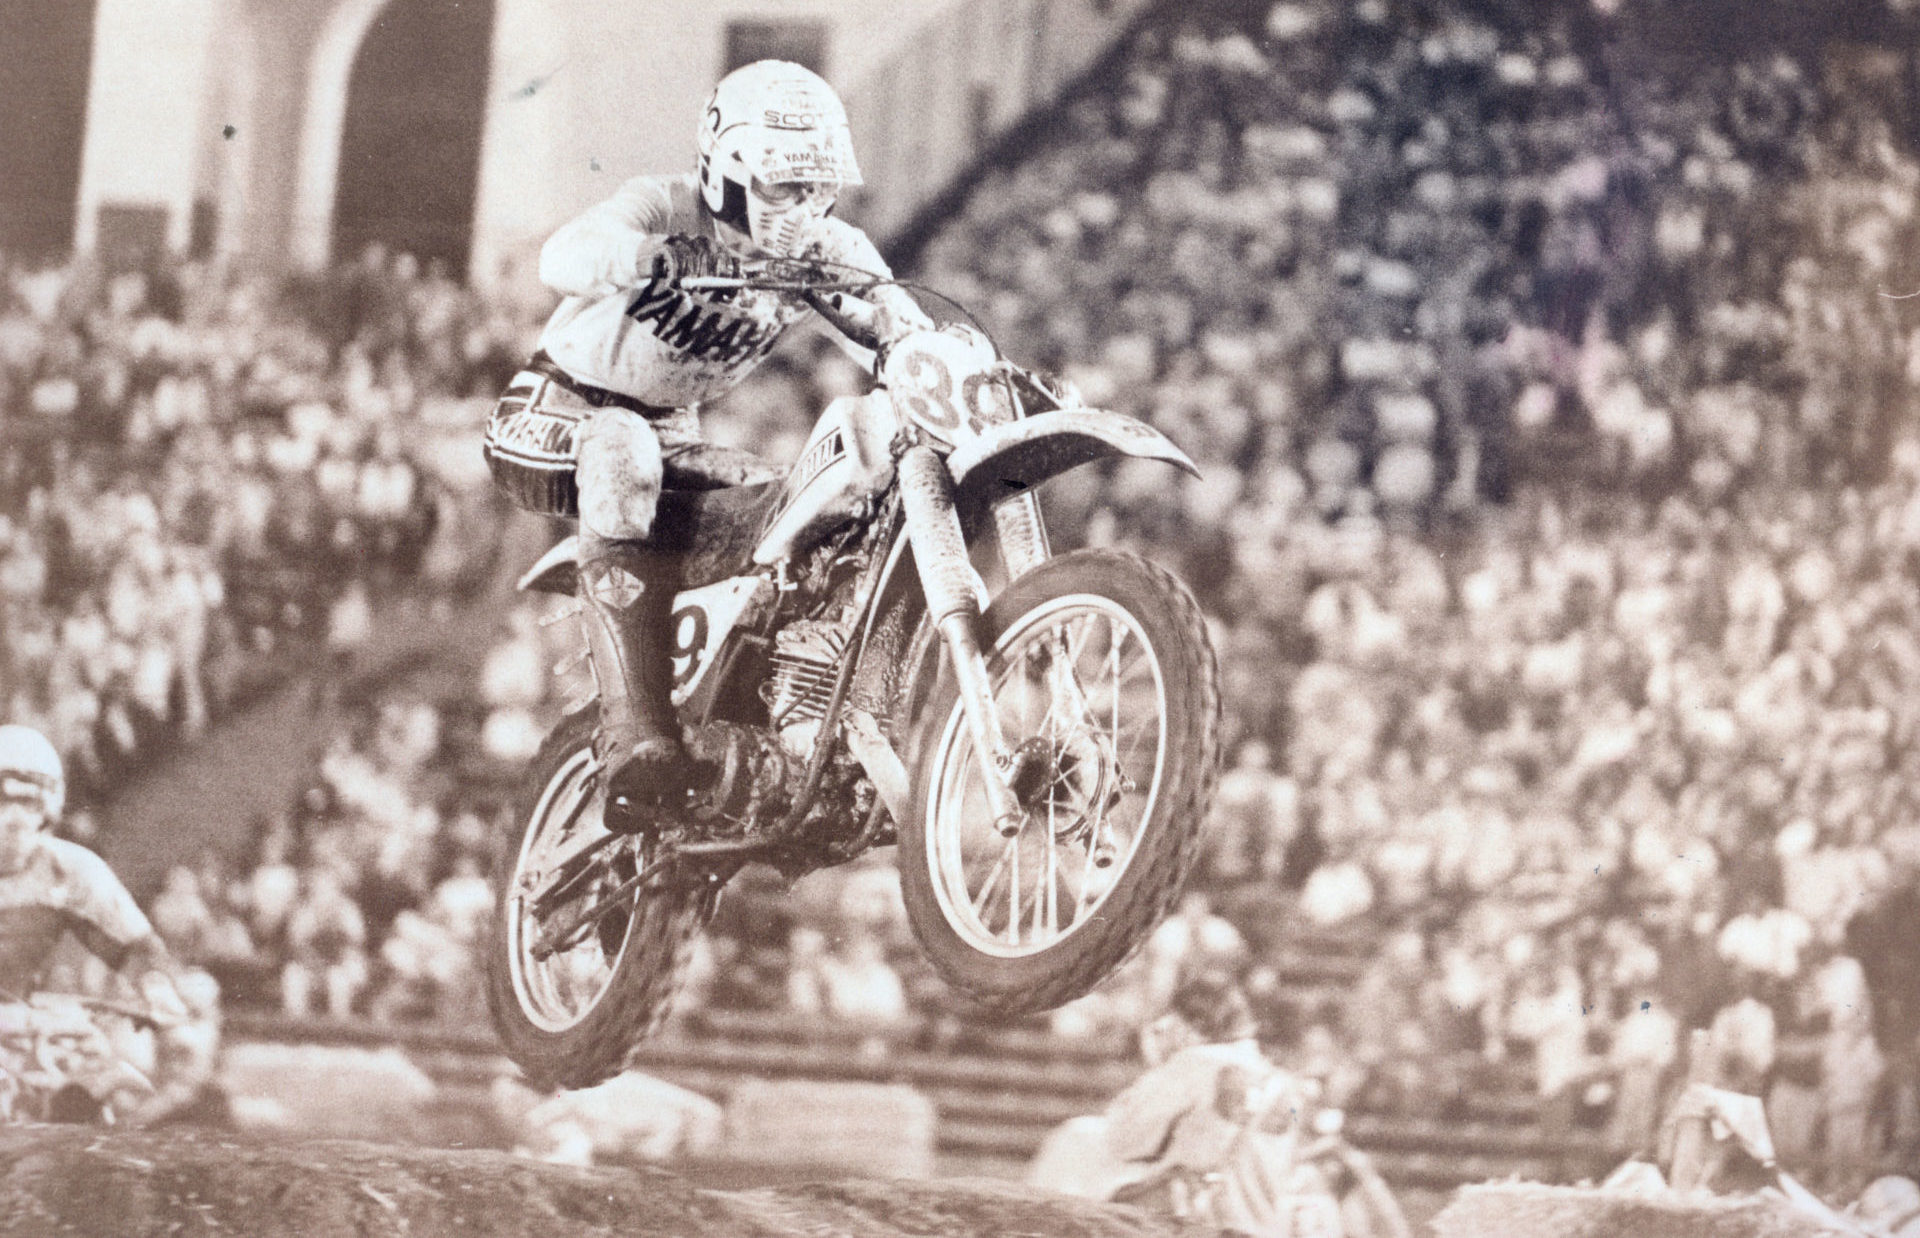 Mike Bell (39), R.I.P. Photo courtesy AMA Motorcycle Hall of Fame.